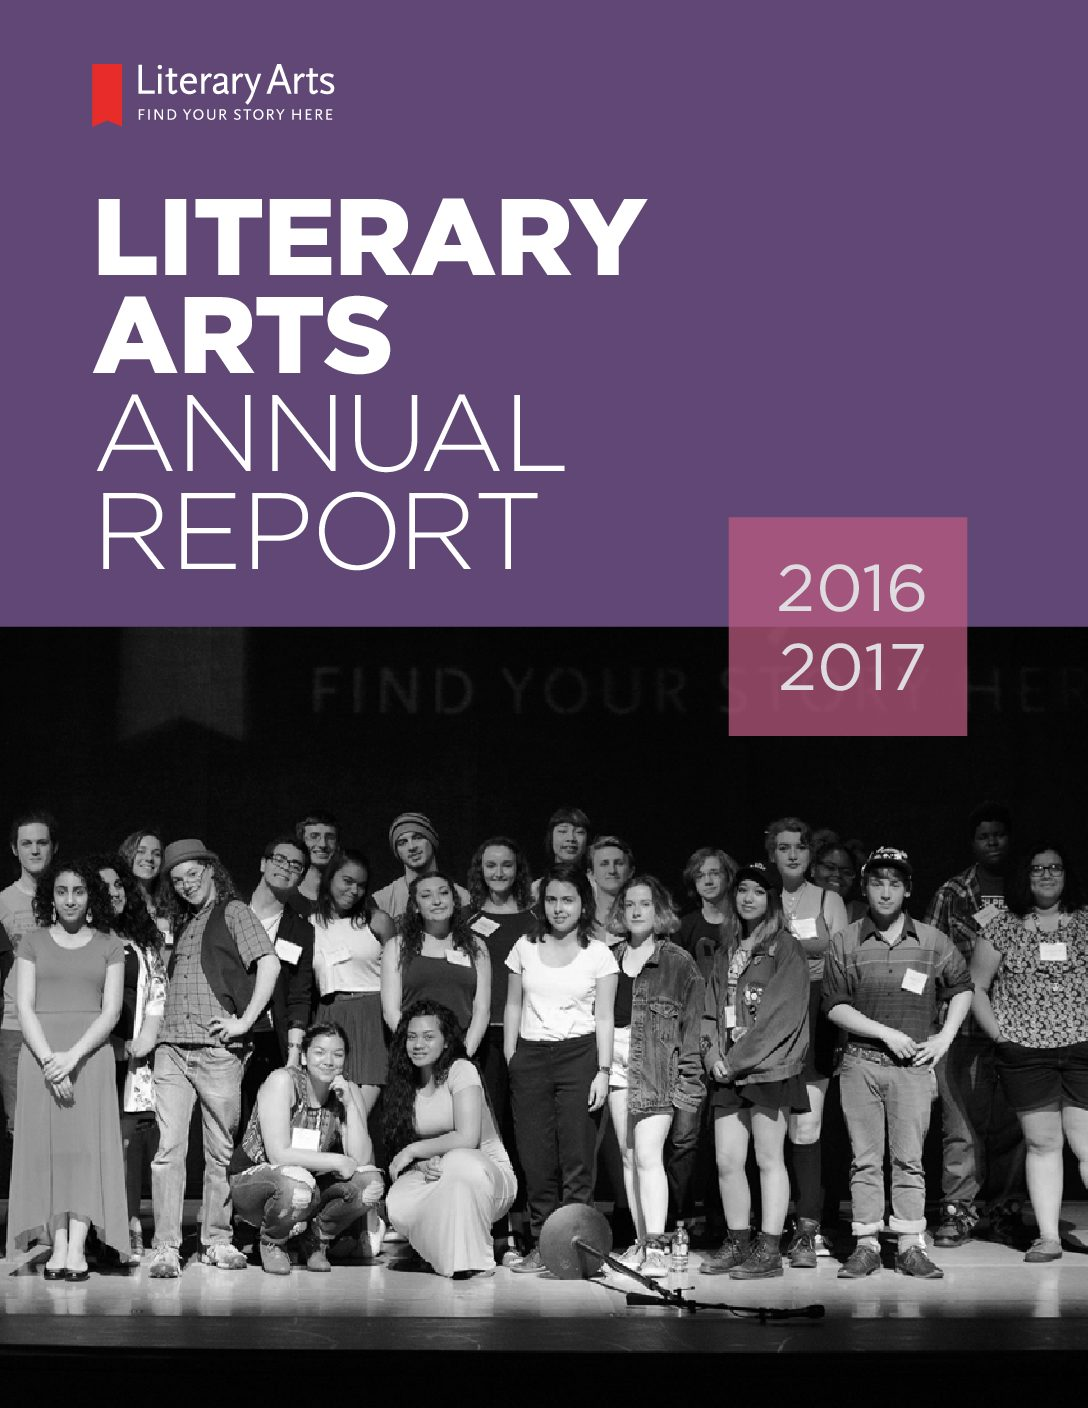 Literary Arts Annual Report 2016/2017